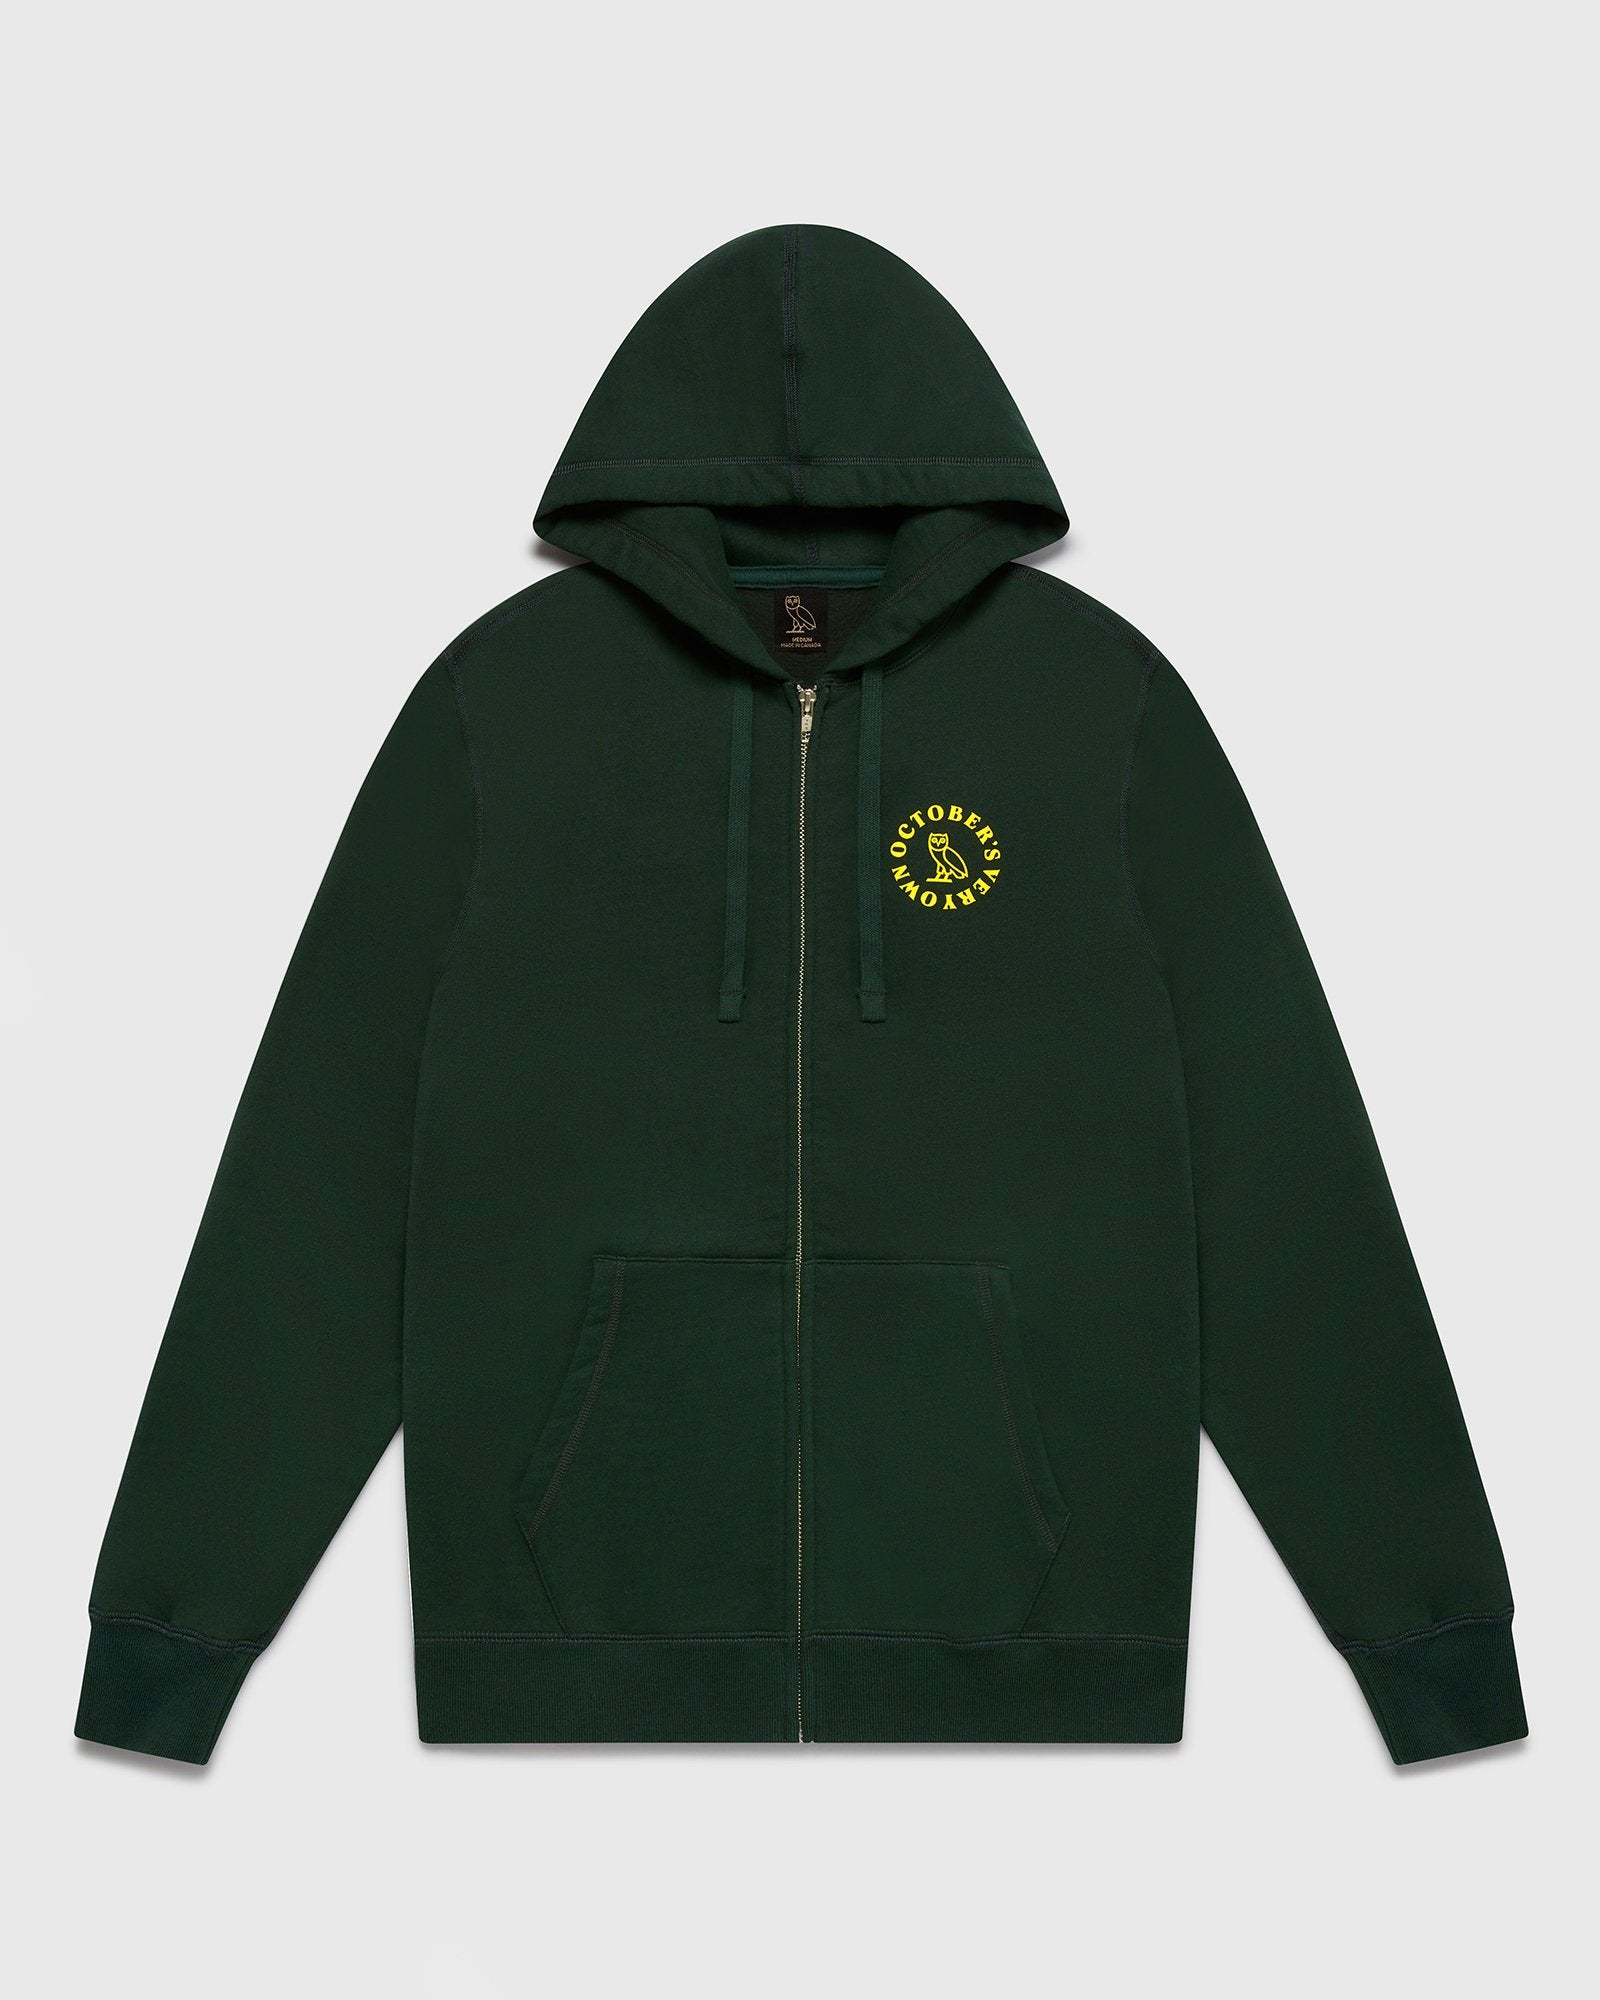 CIRCLE ZIP HOODIE - EVERGREEN IMAGE #2